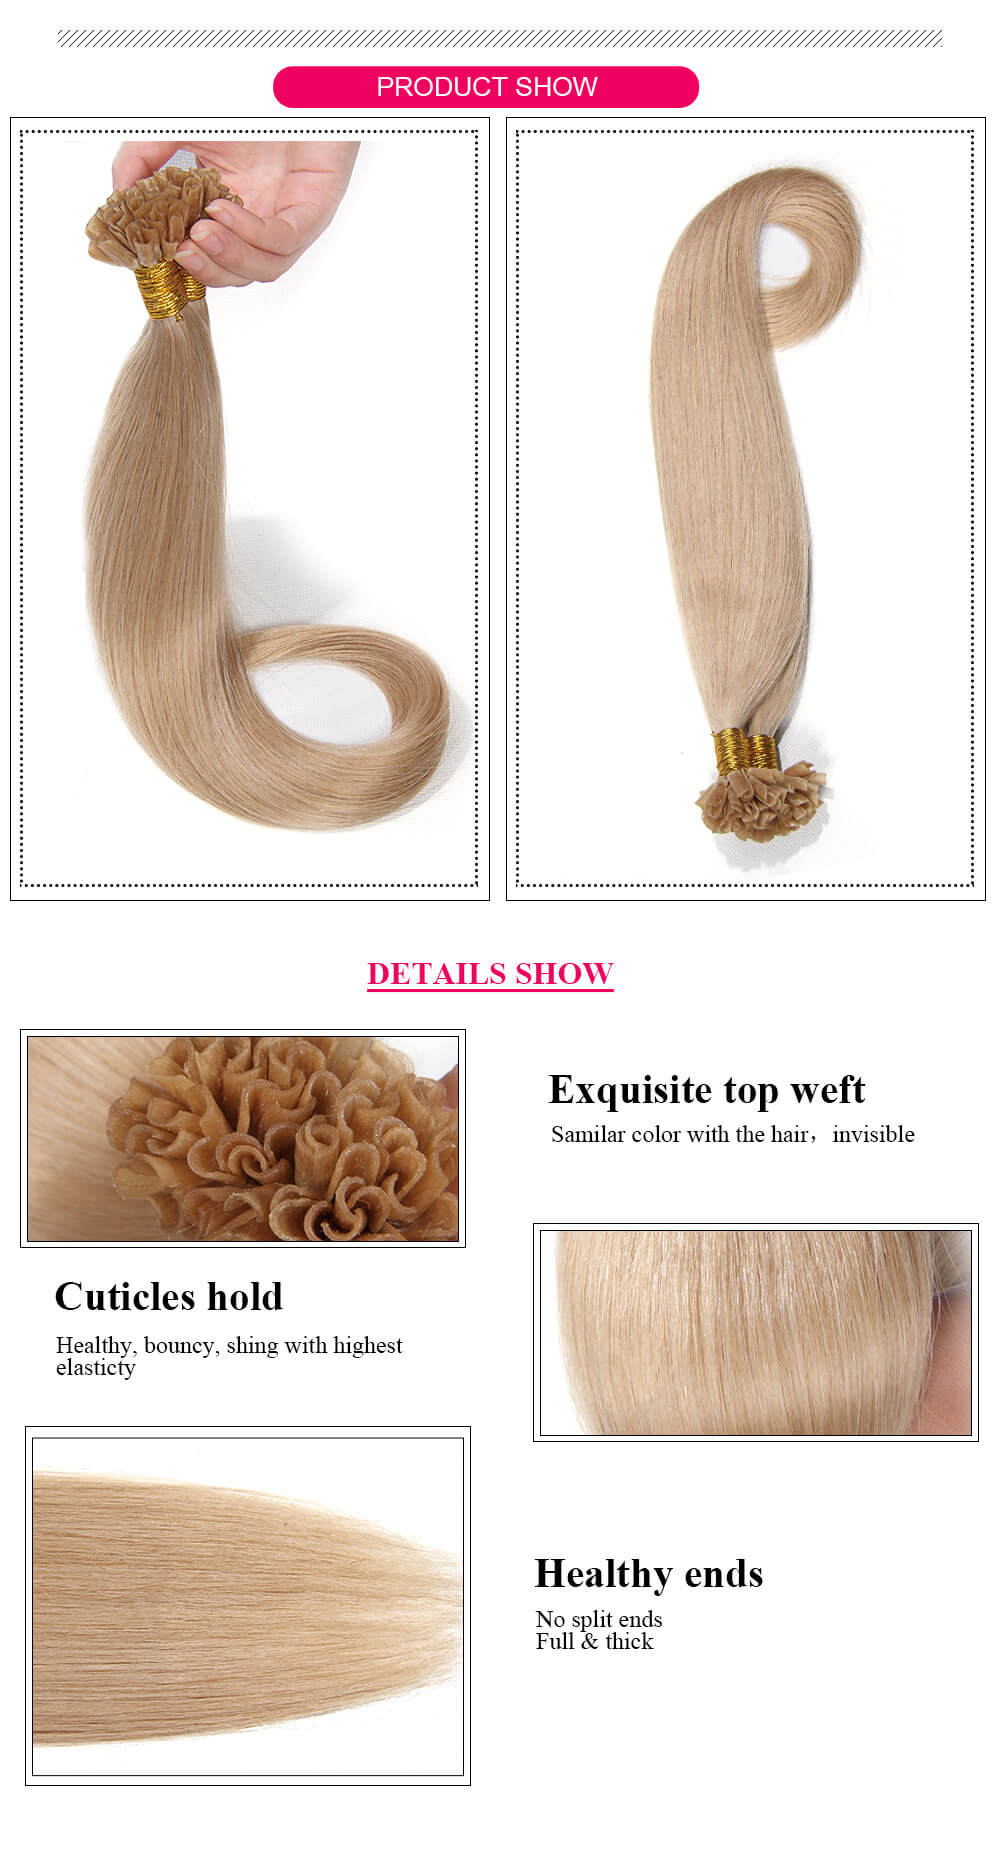 U Tip hair product details